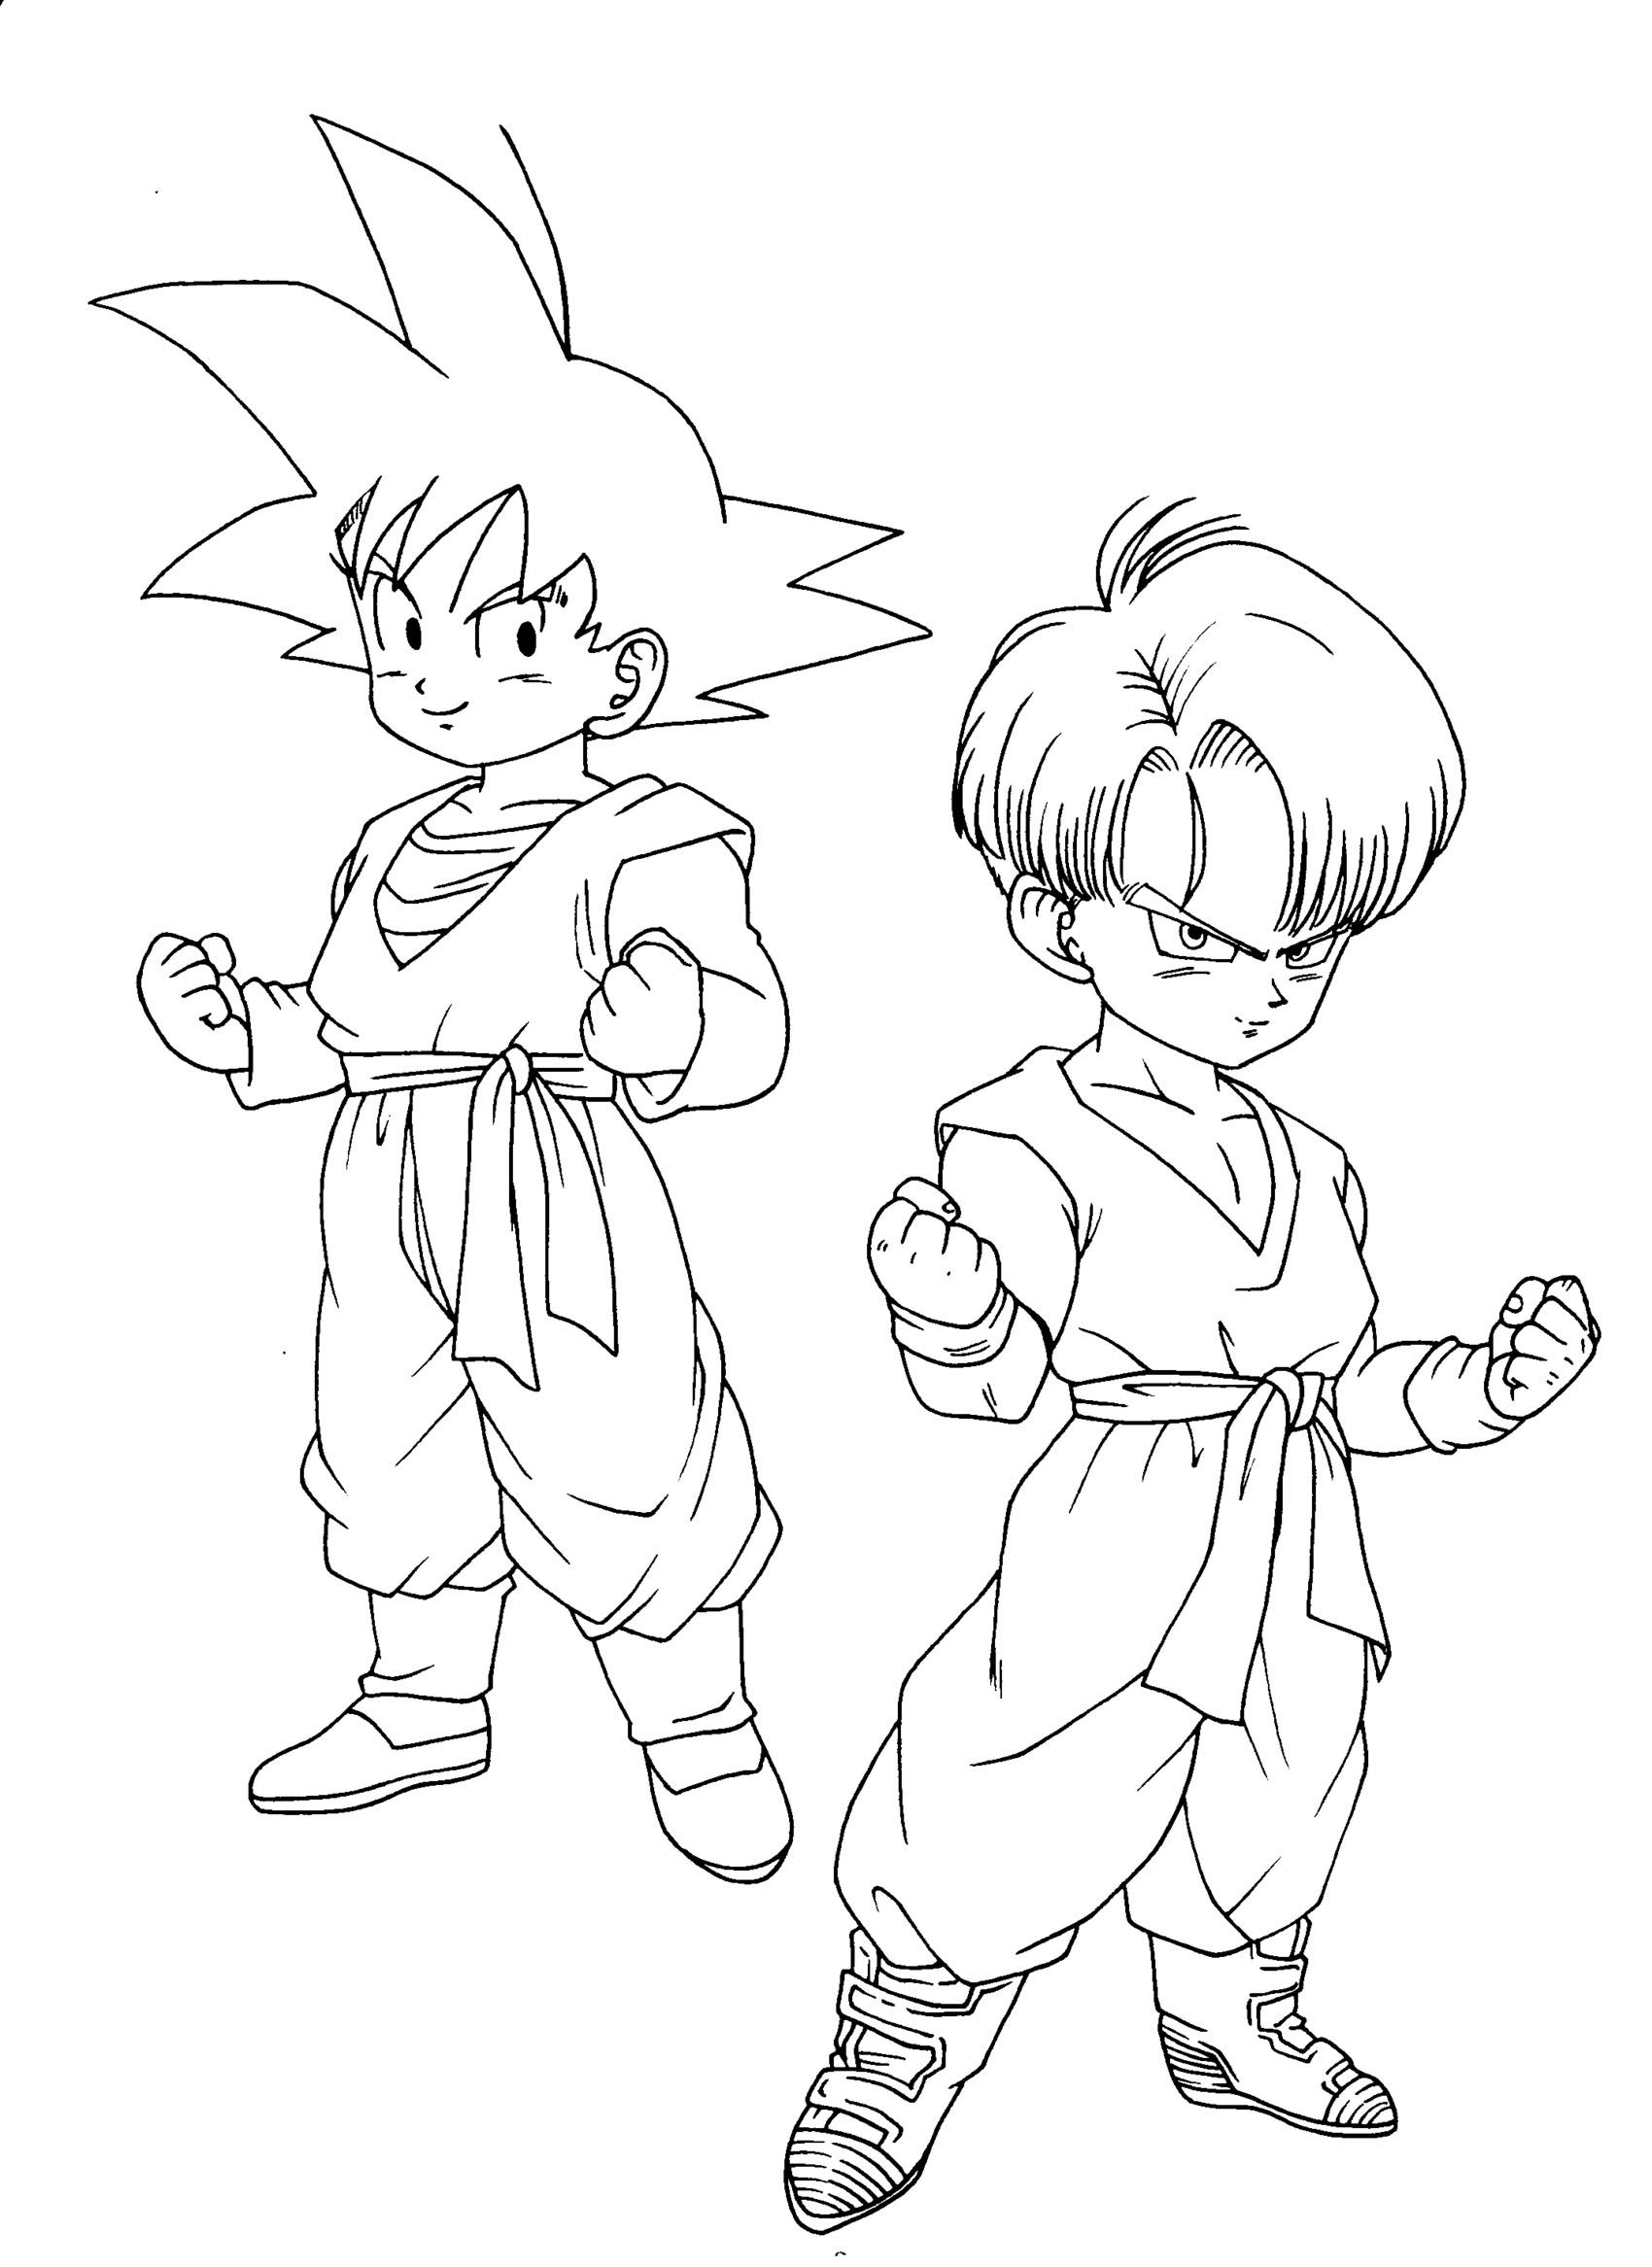 Free Dragon Ball Z coloring page to print and color, for kids : Songoten Trunks